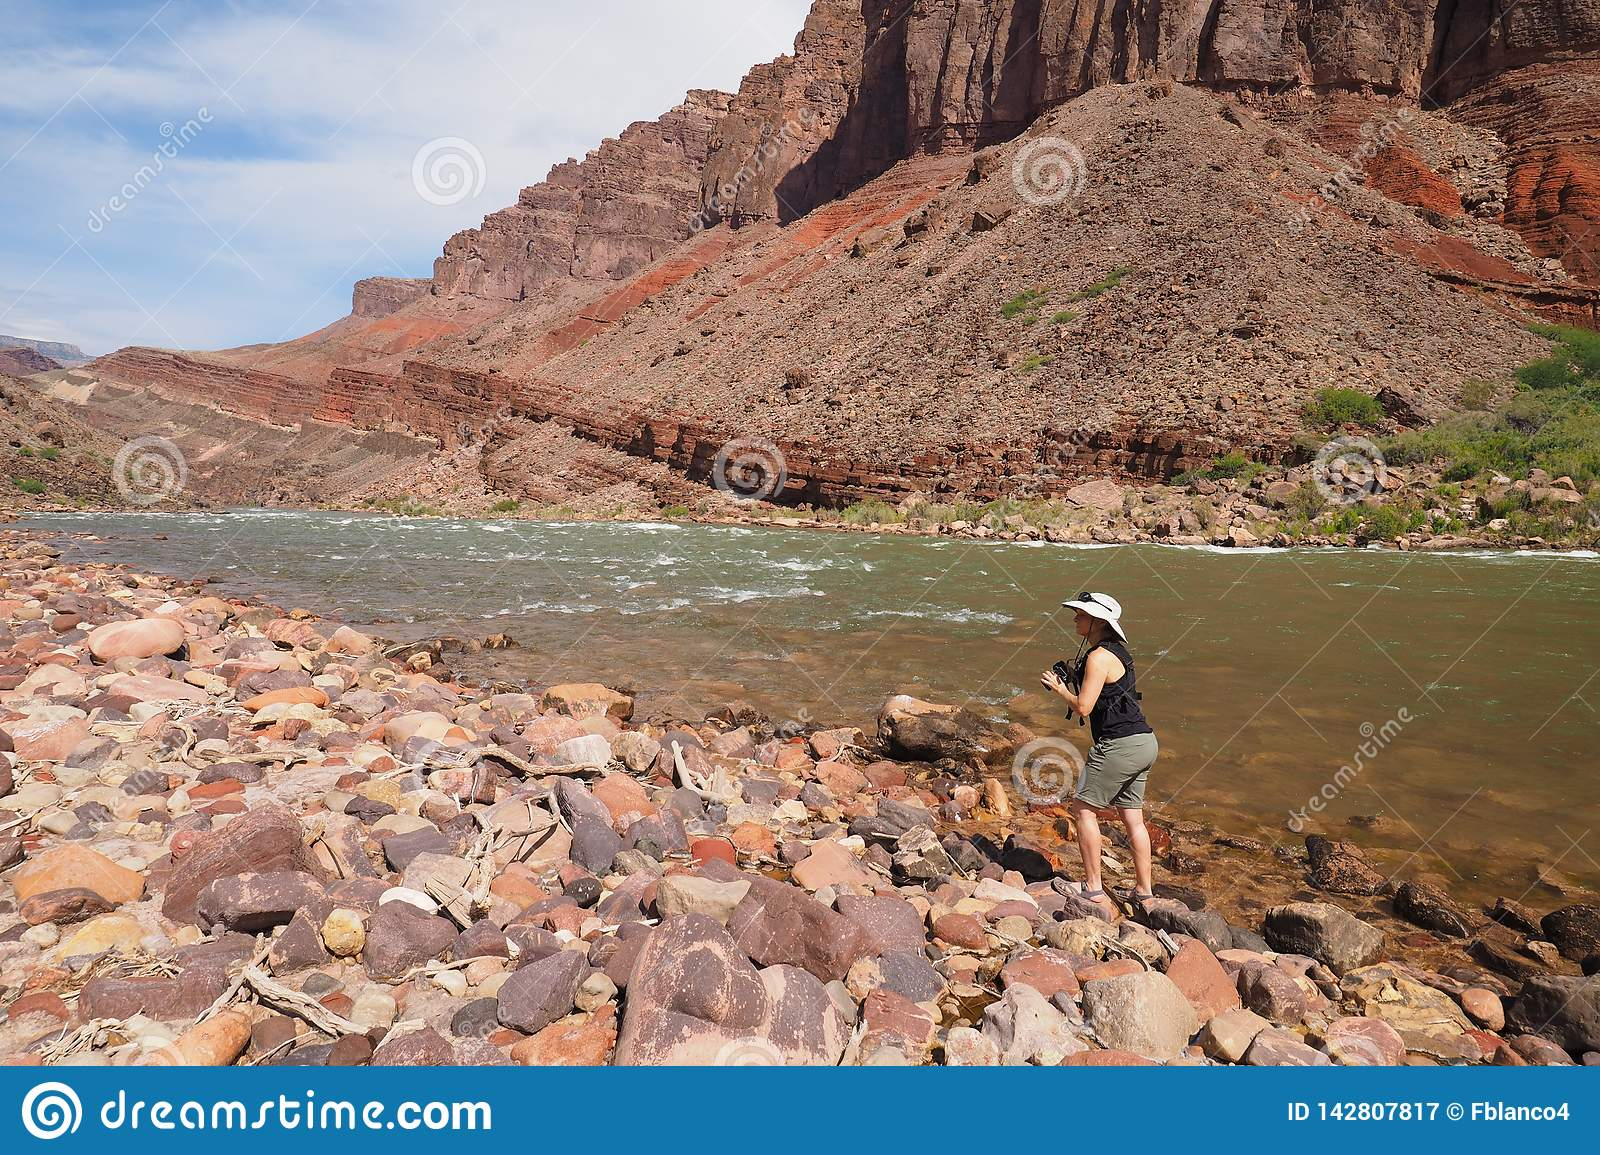 Woman photographing the Colrado River and inner canyon in the Grand Canyon.